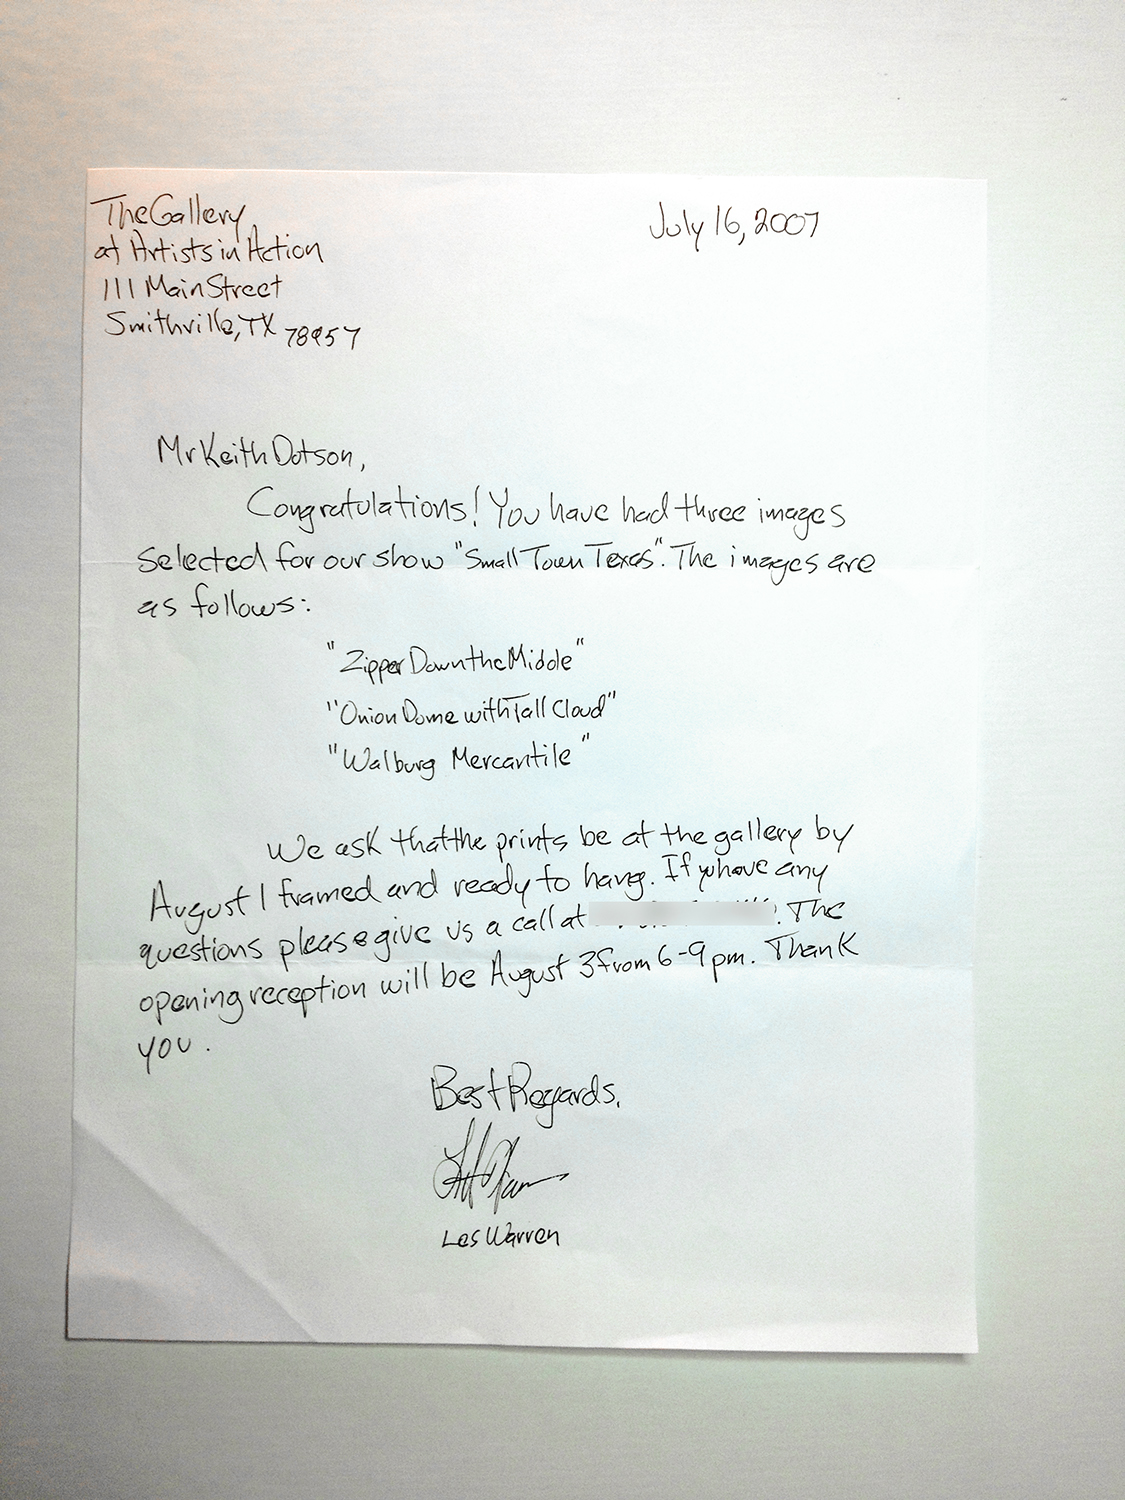 Acceptance letter for my very first photo exhibition ever, in 2007